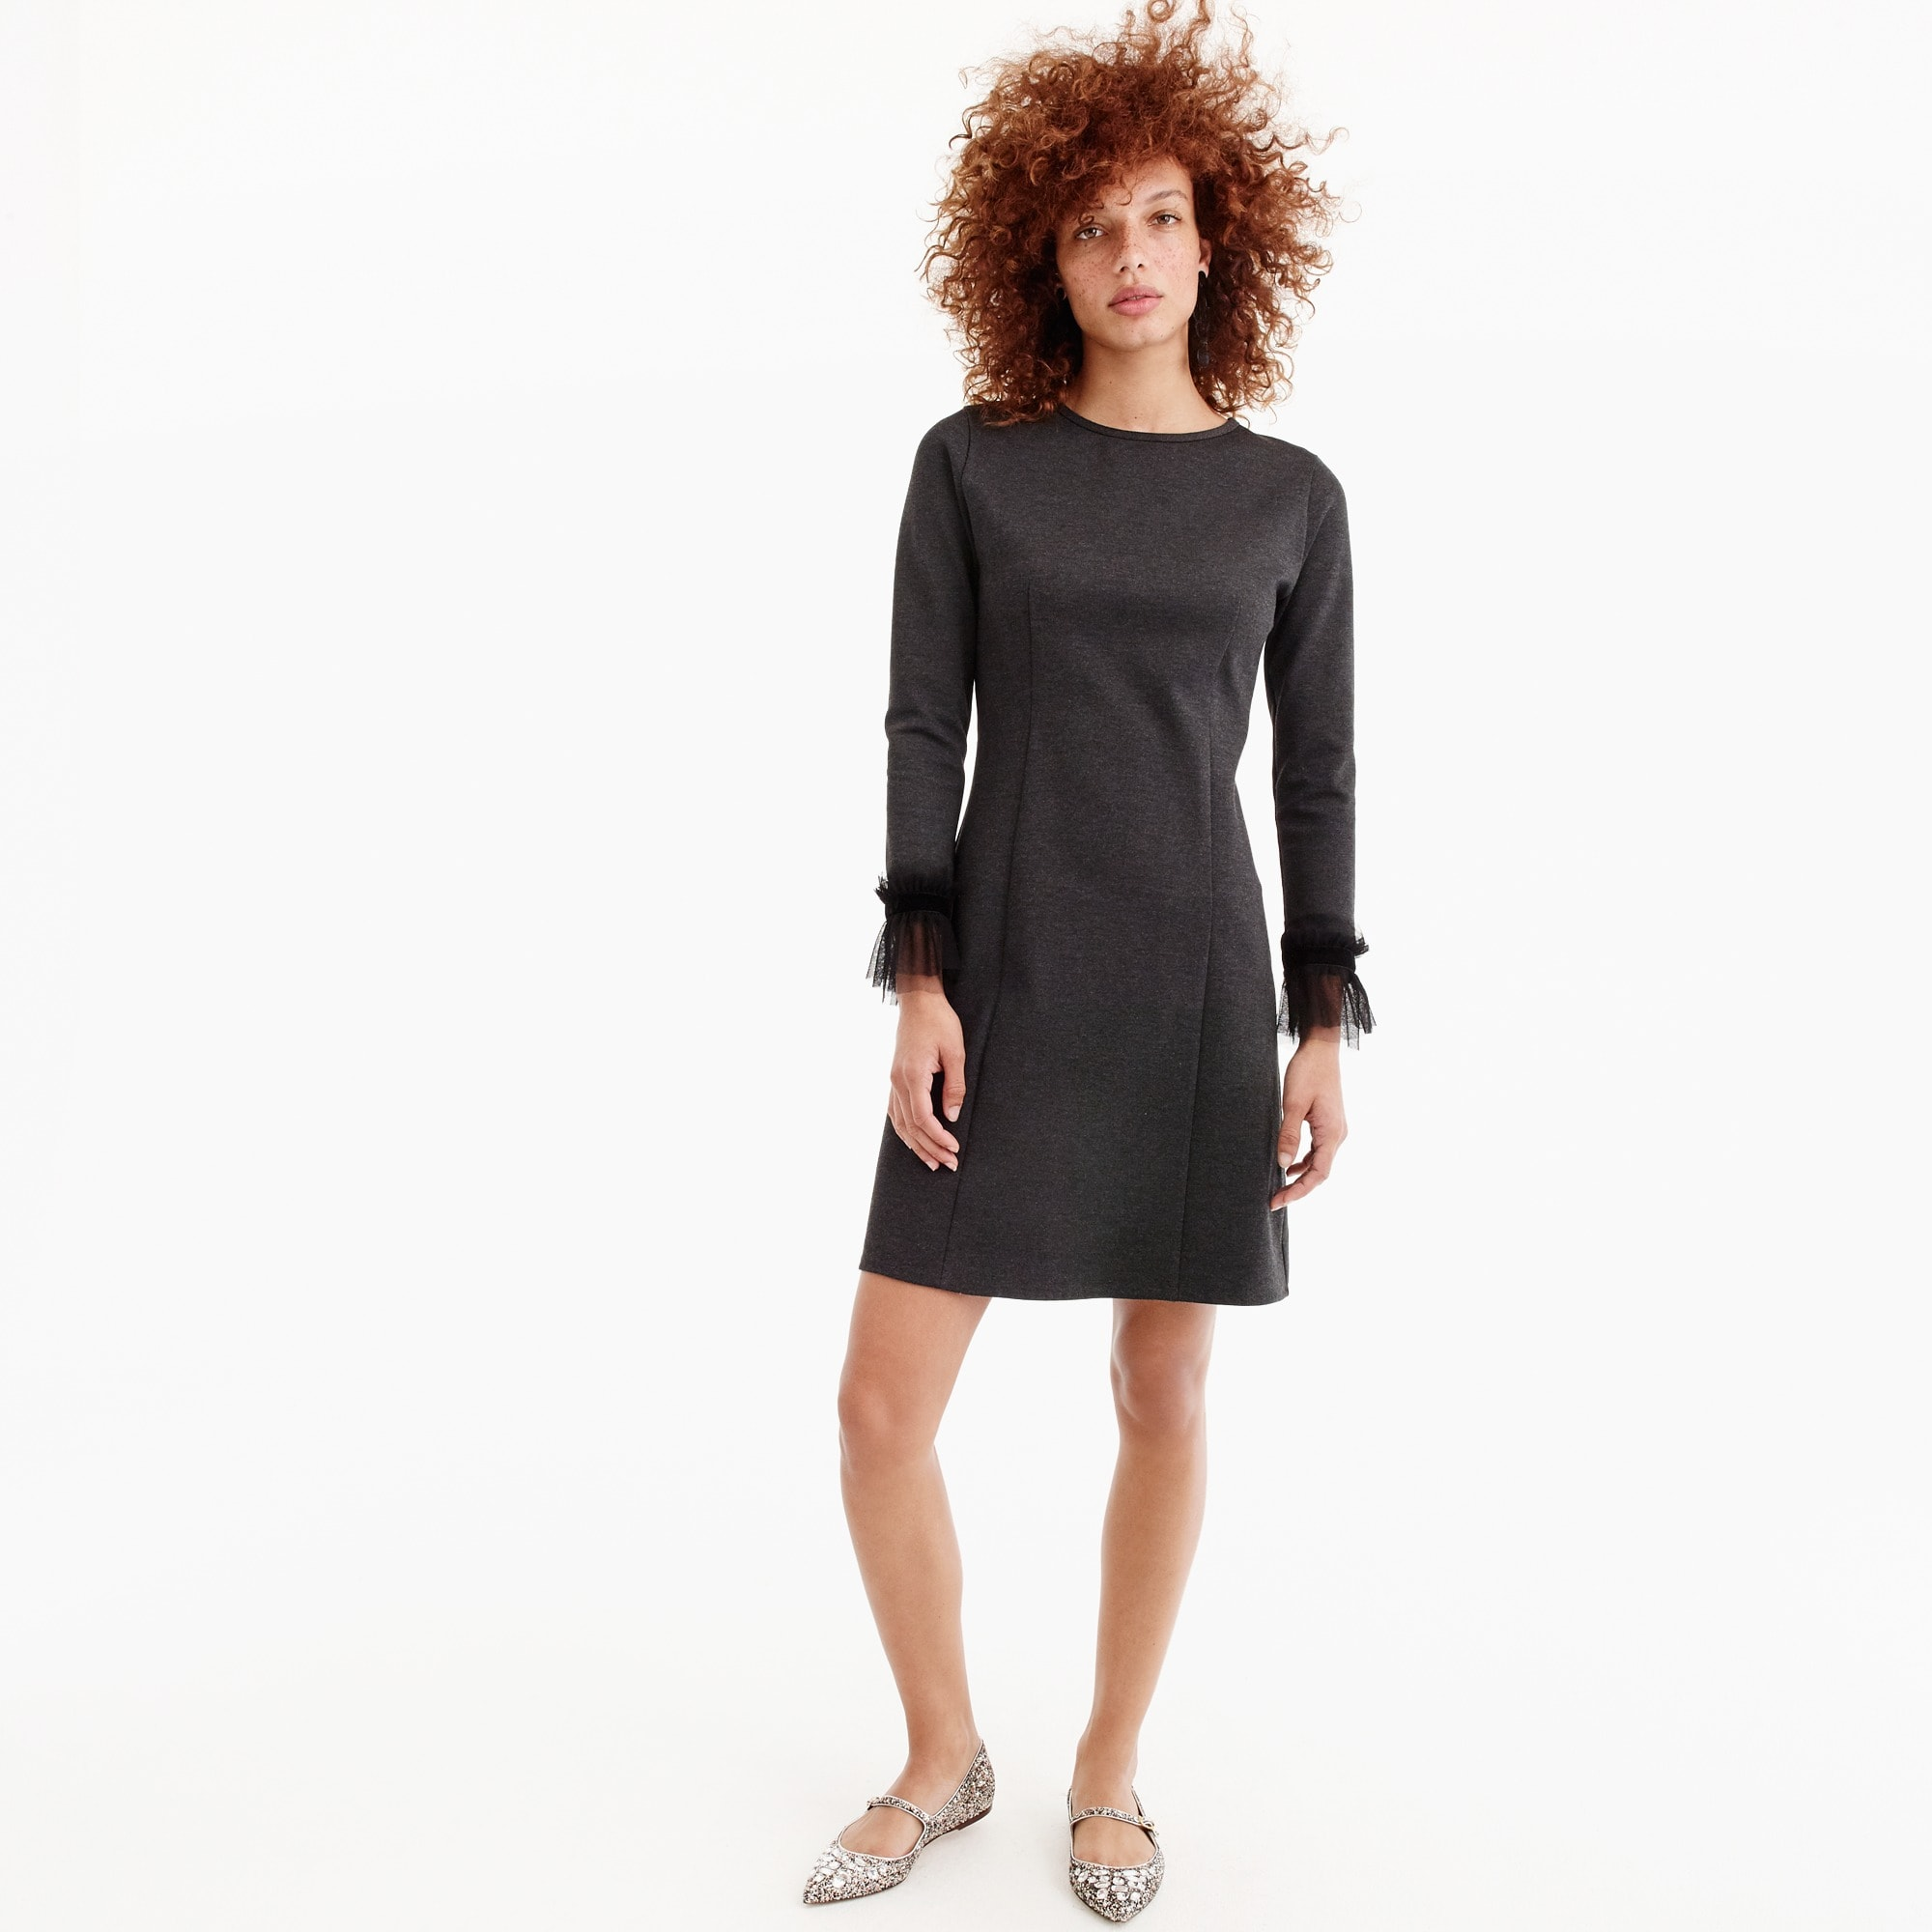 Image 3 for Tall Long-sleeve sheath dress with tulle